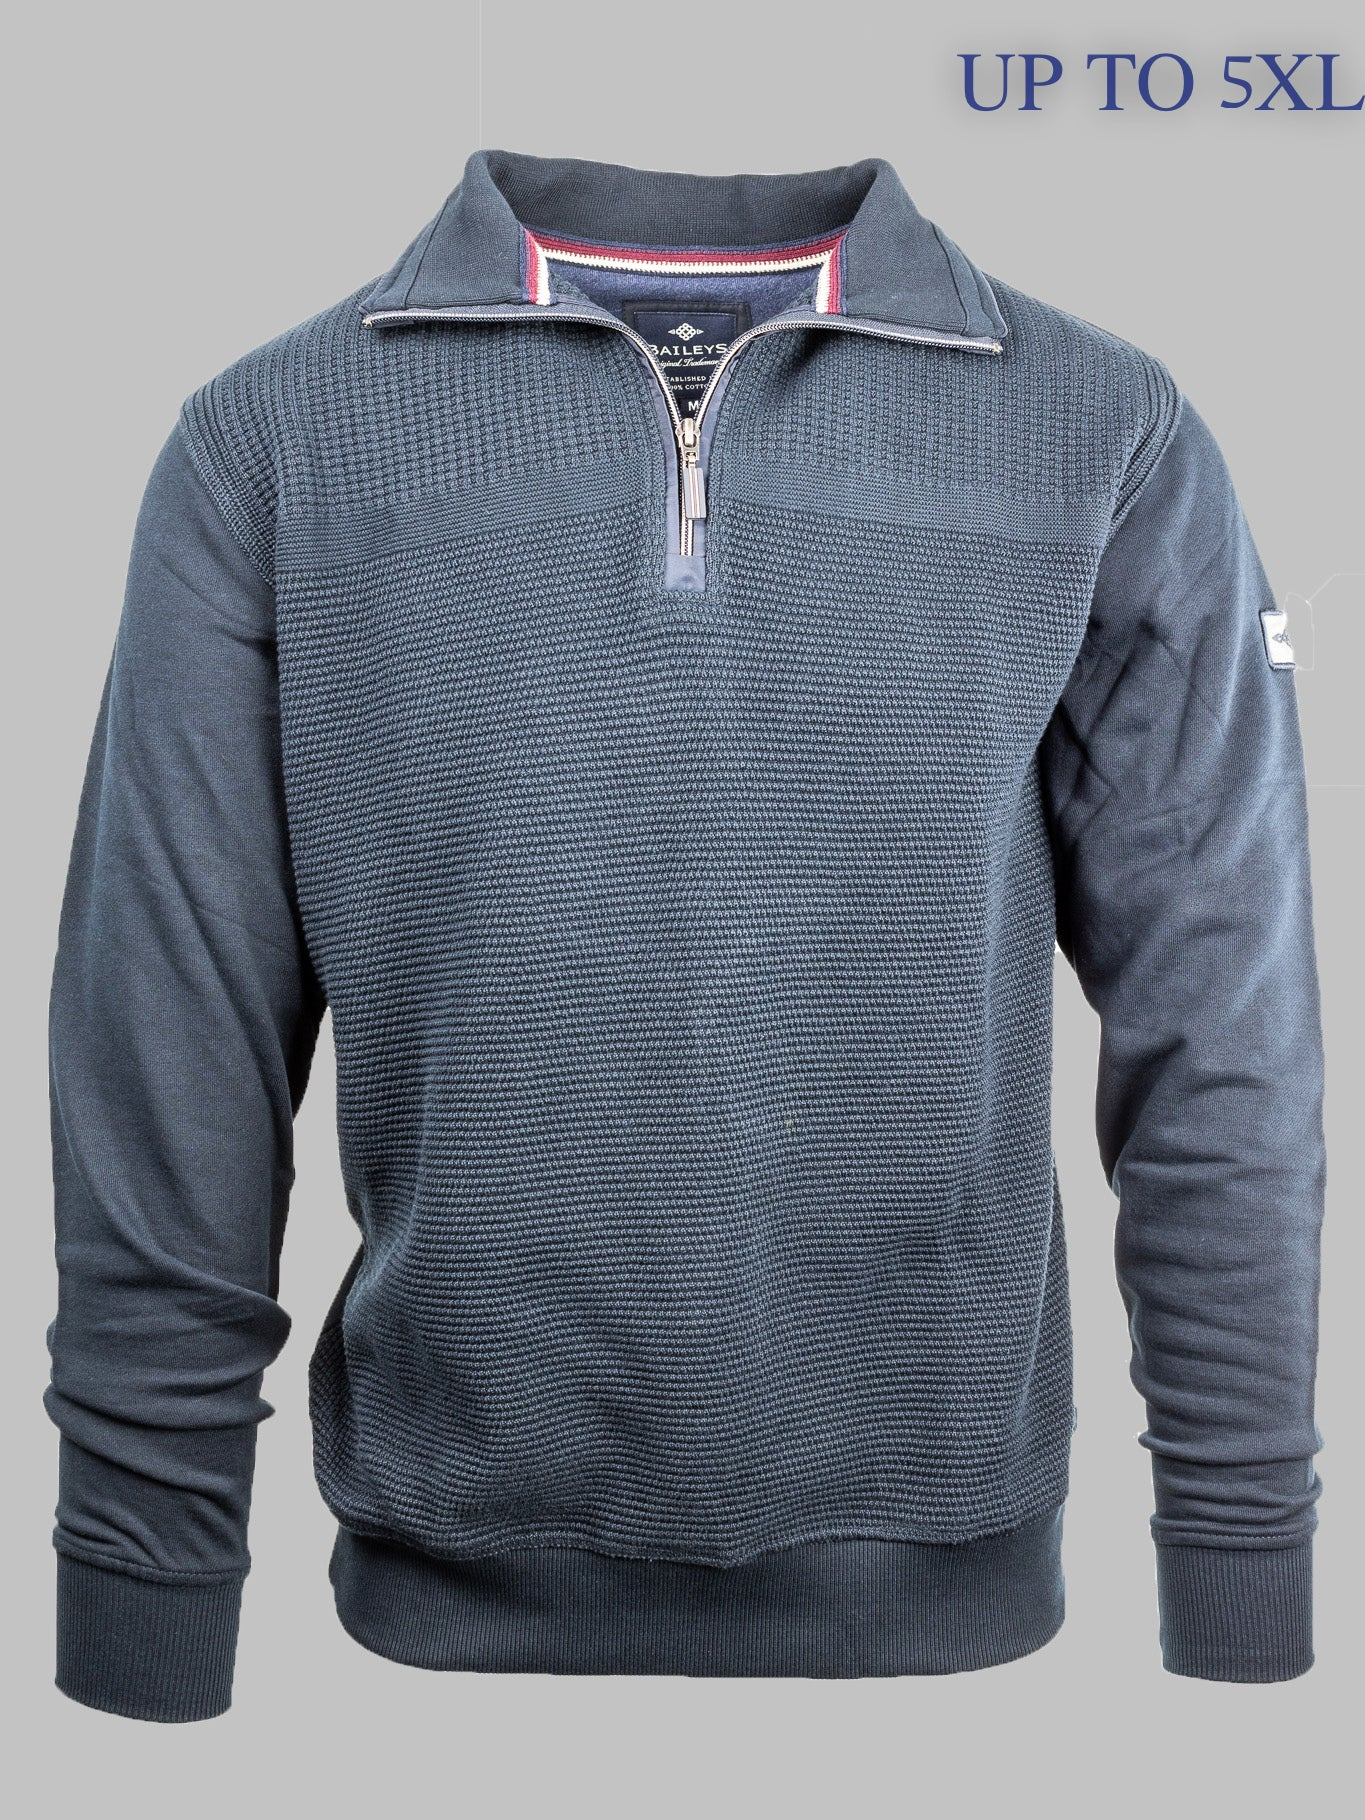 Baileys Navy 1/2 Zip Knit 203198 for sale online ireland